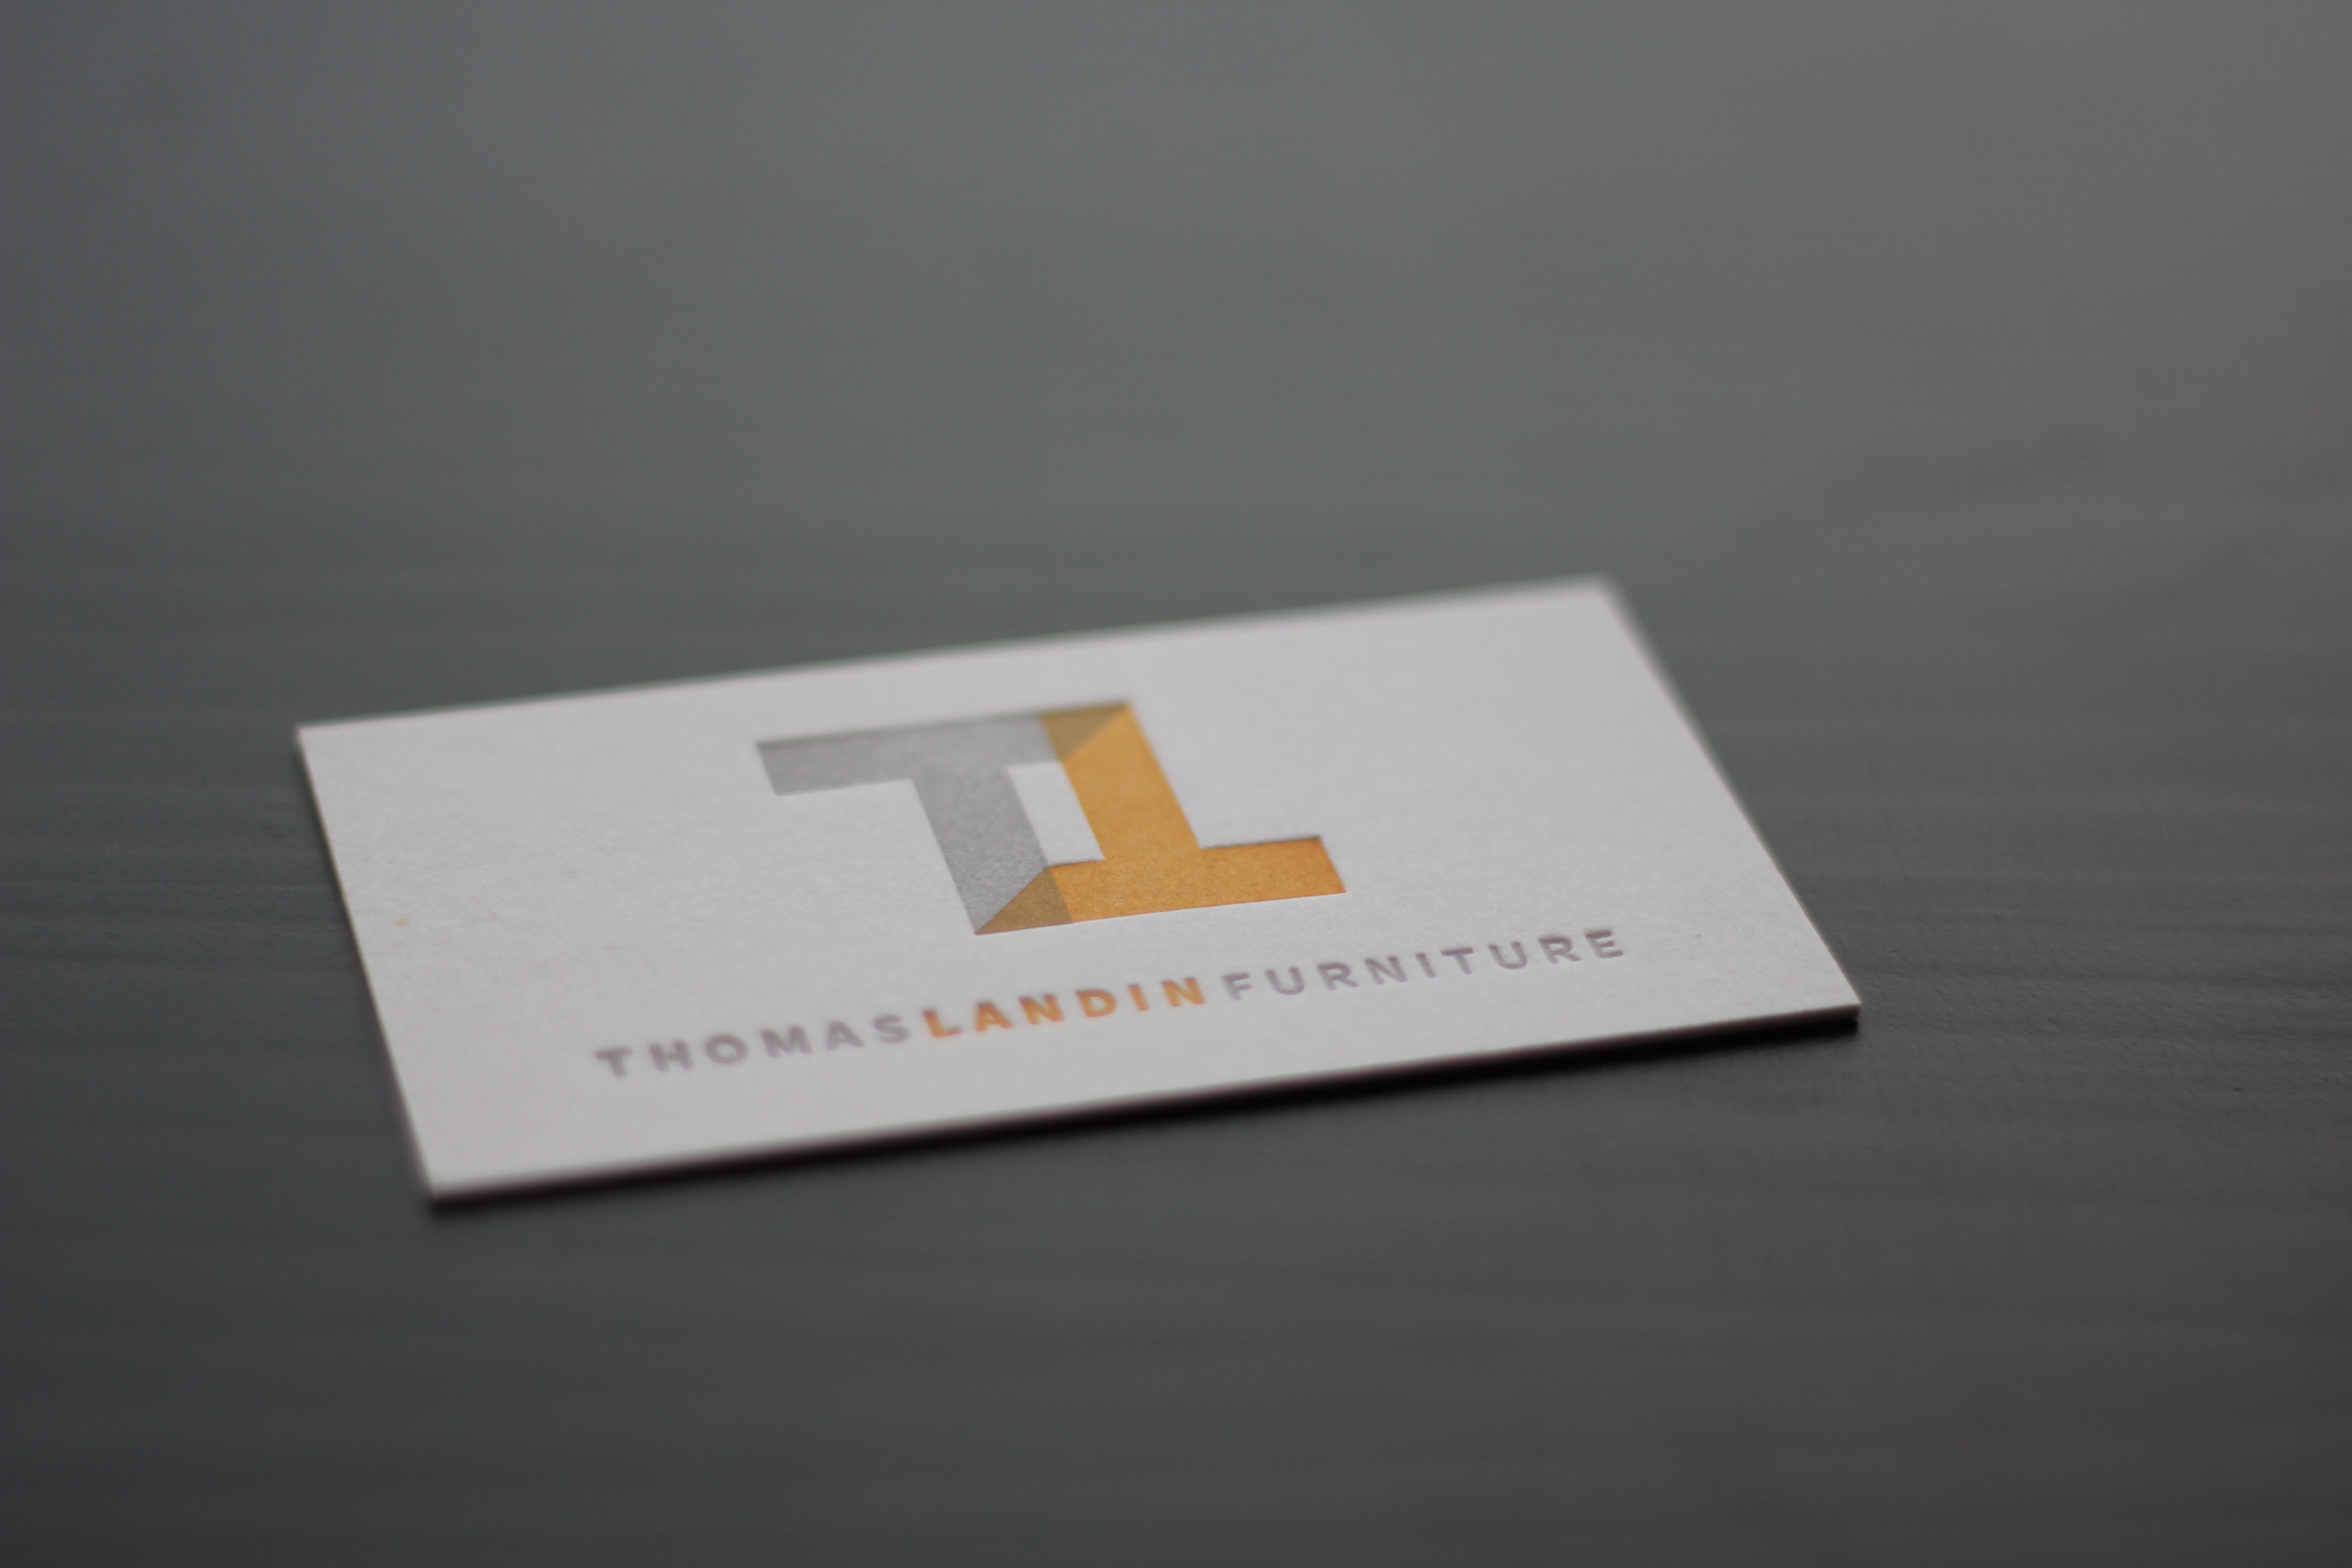 Business cards thomas landin furniture excuse the mess thom already had a logo for his business so rachel simply had to layout the business cards to thoms liking colourmoves